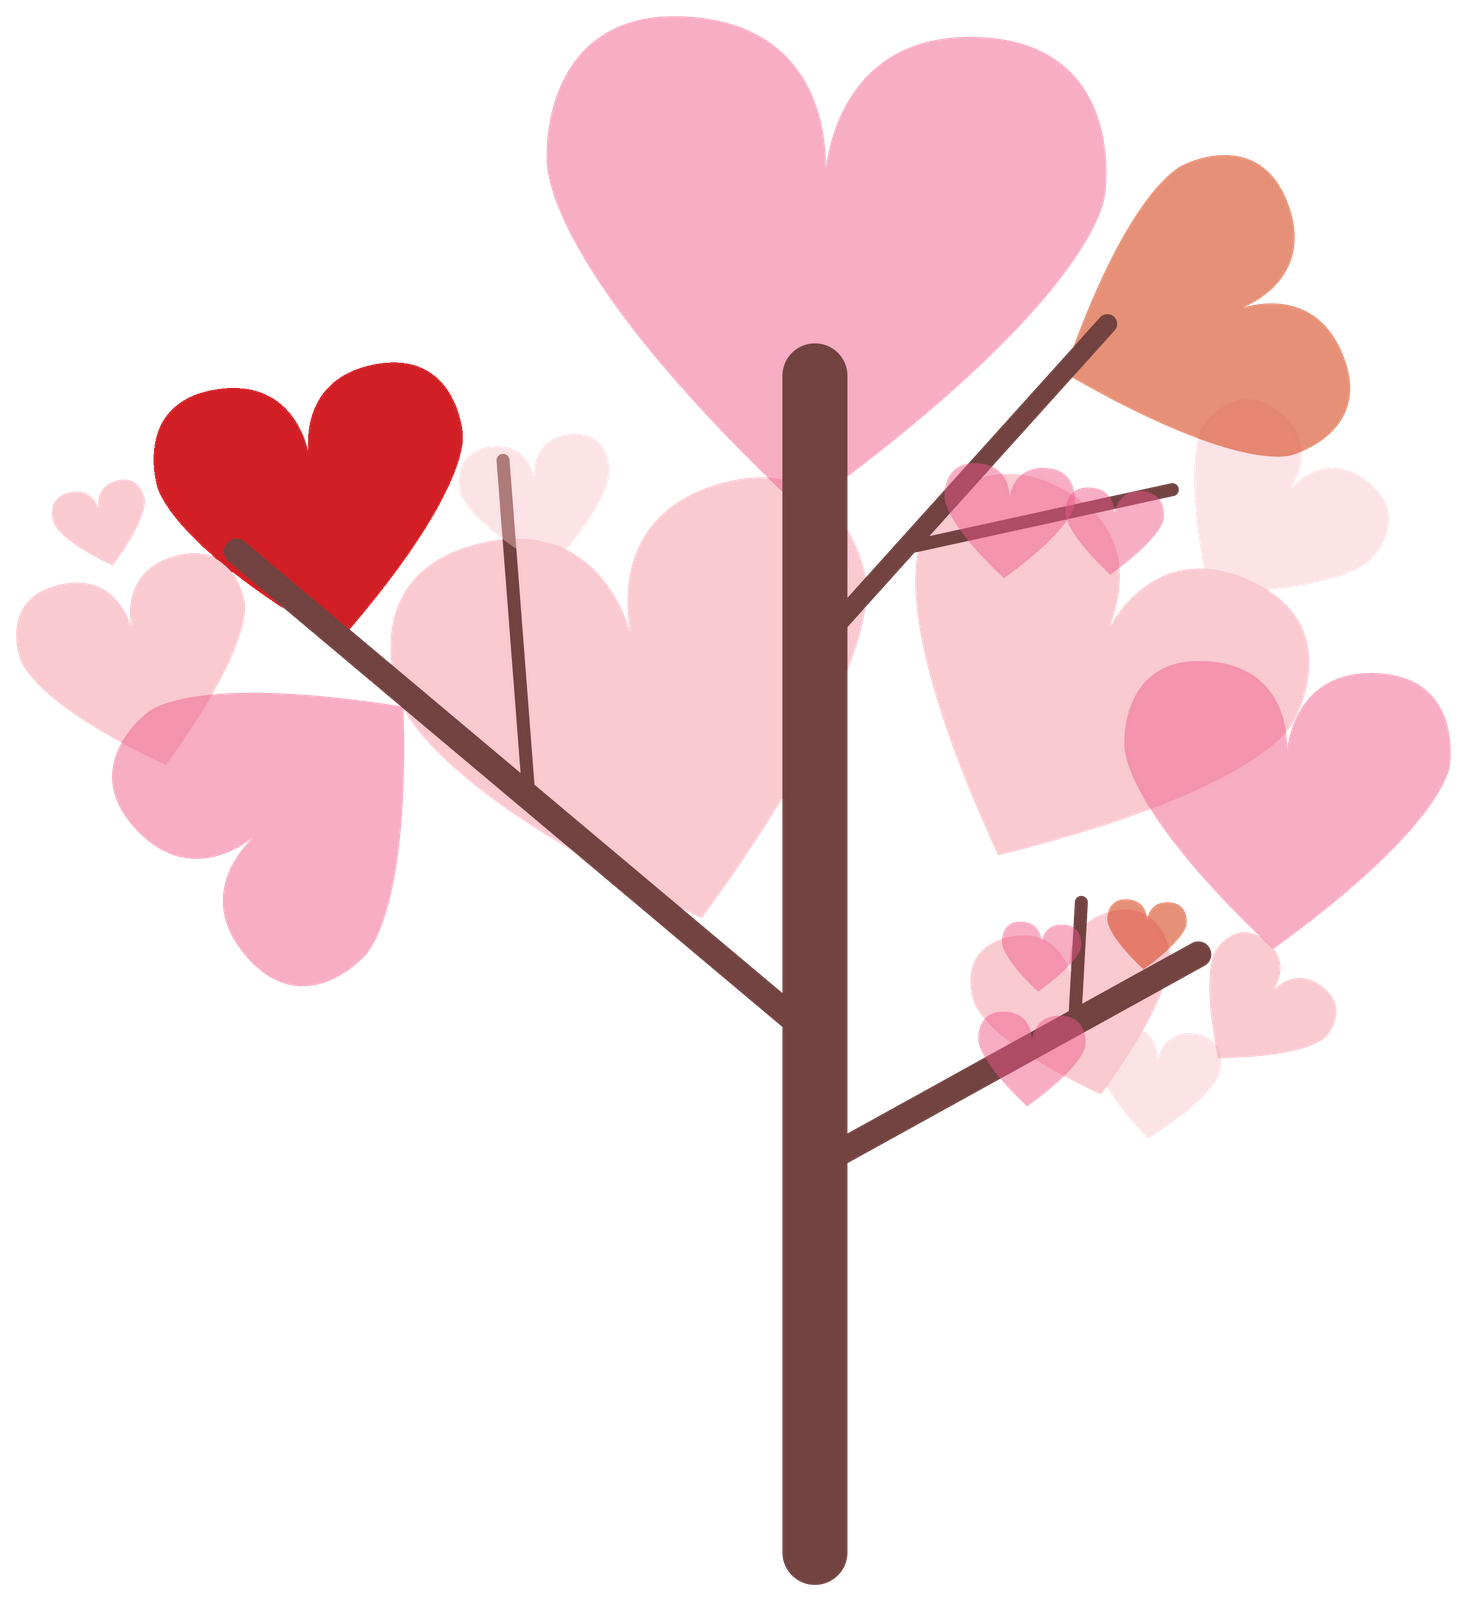 Tag love clipart clipart pictures-Tag love clipart clipart pictures-4